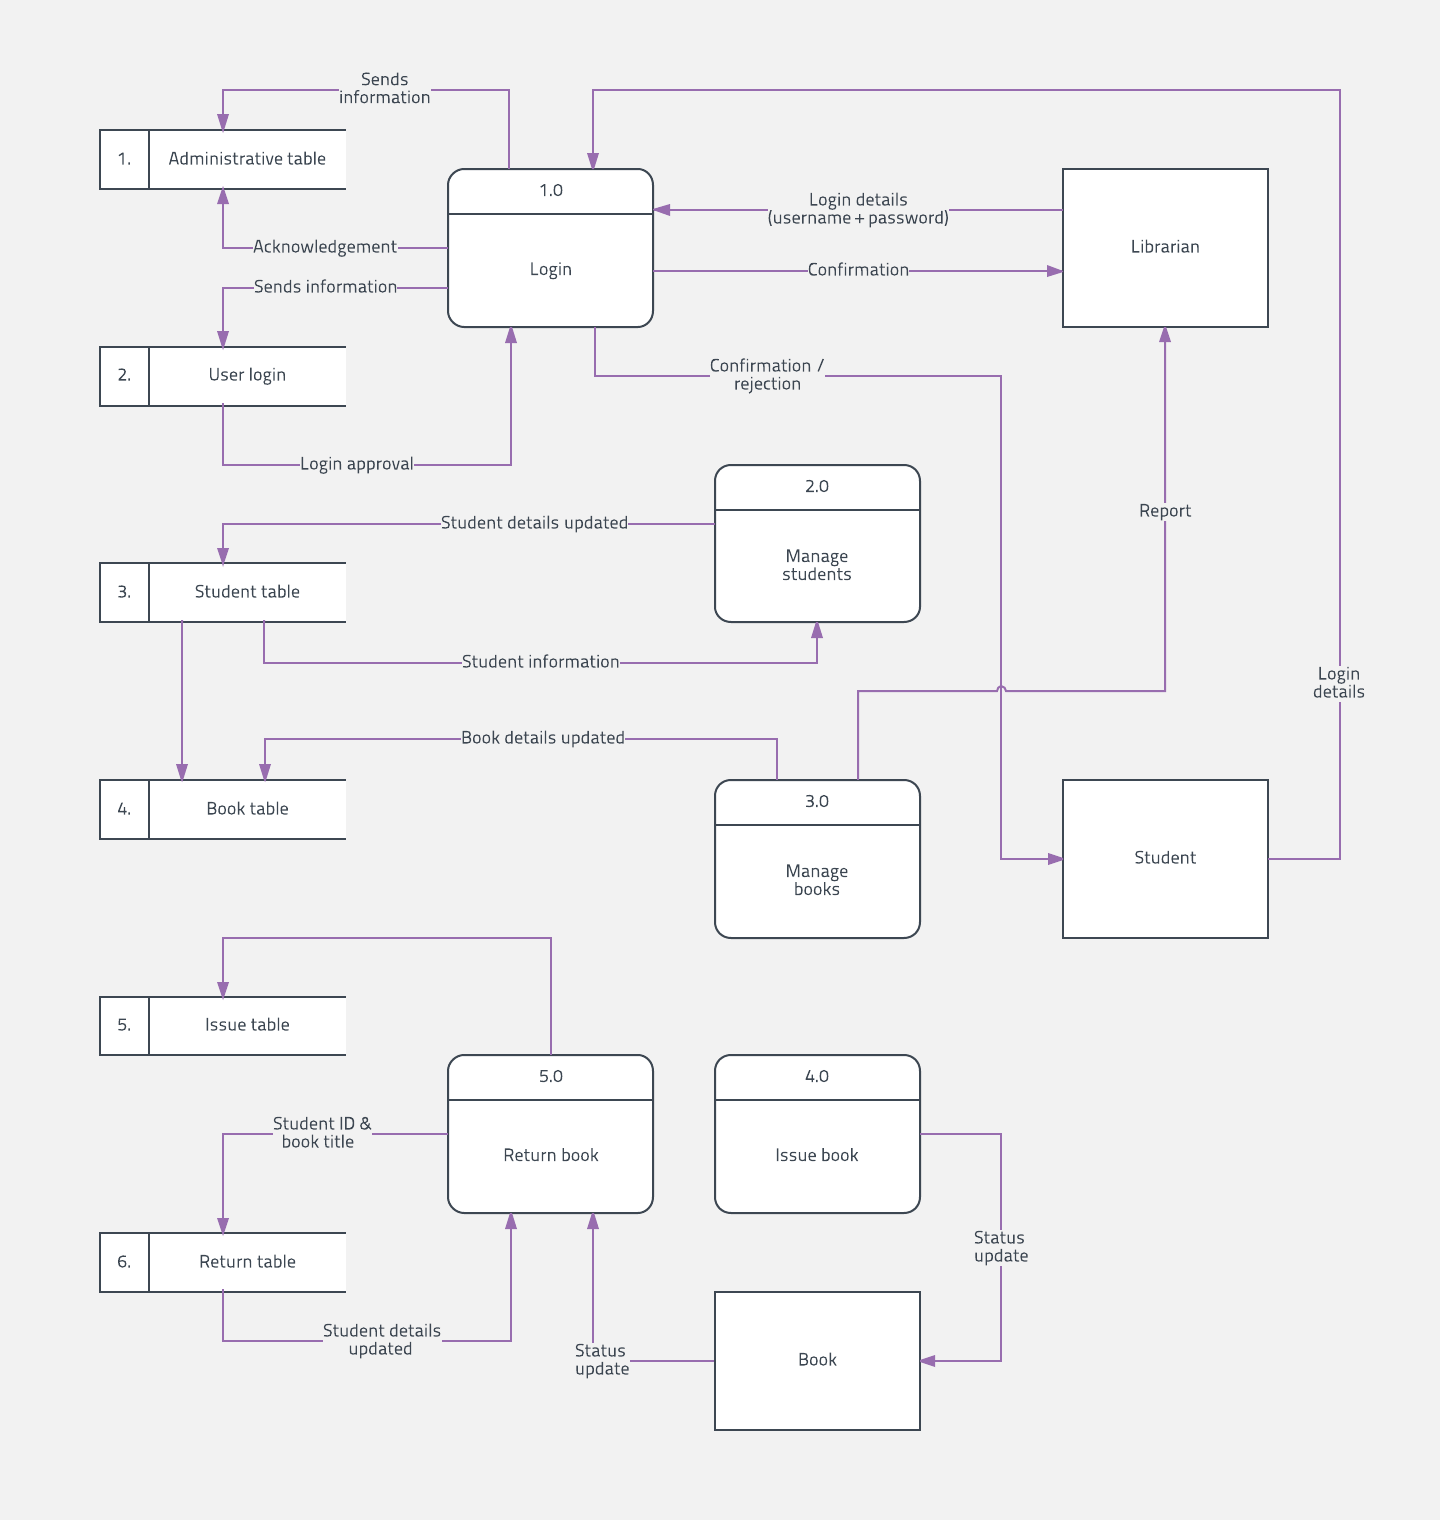 Sharing your data flow diagram